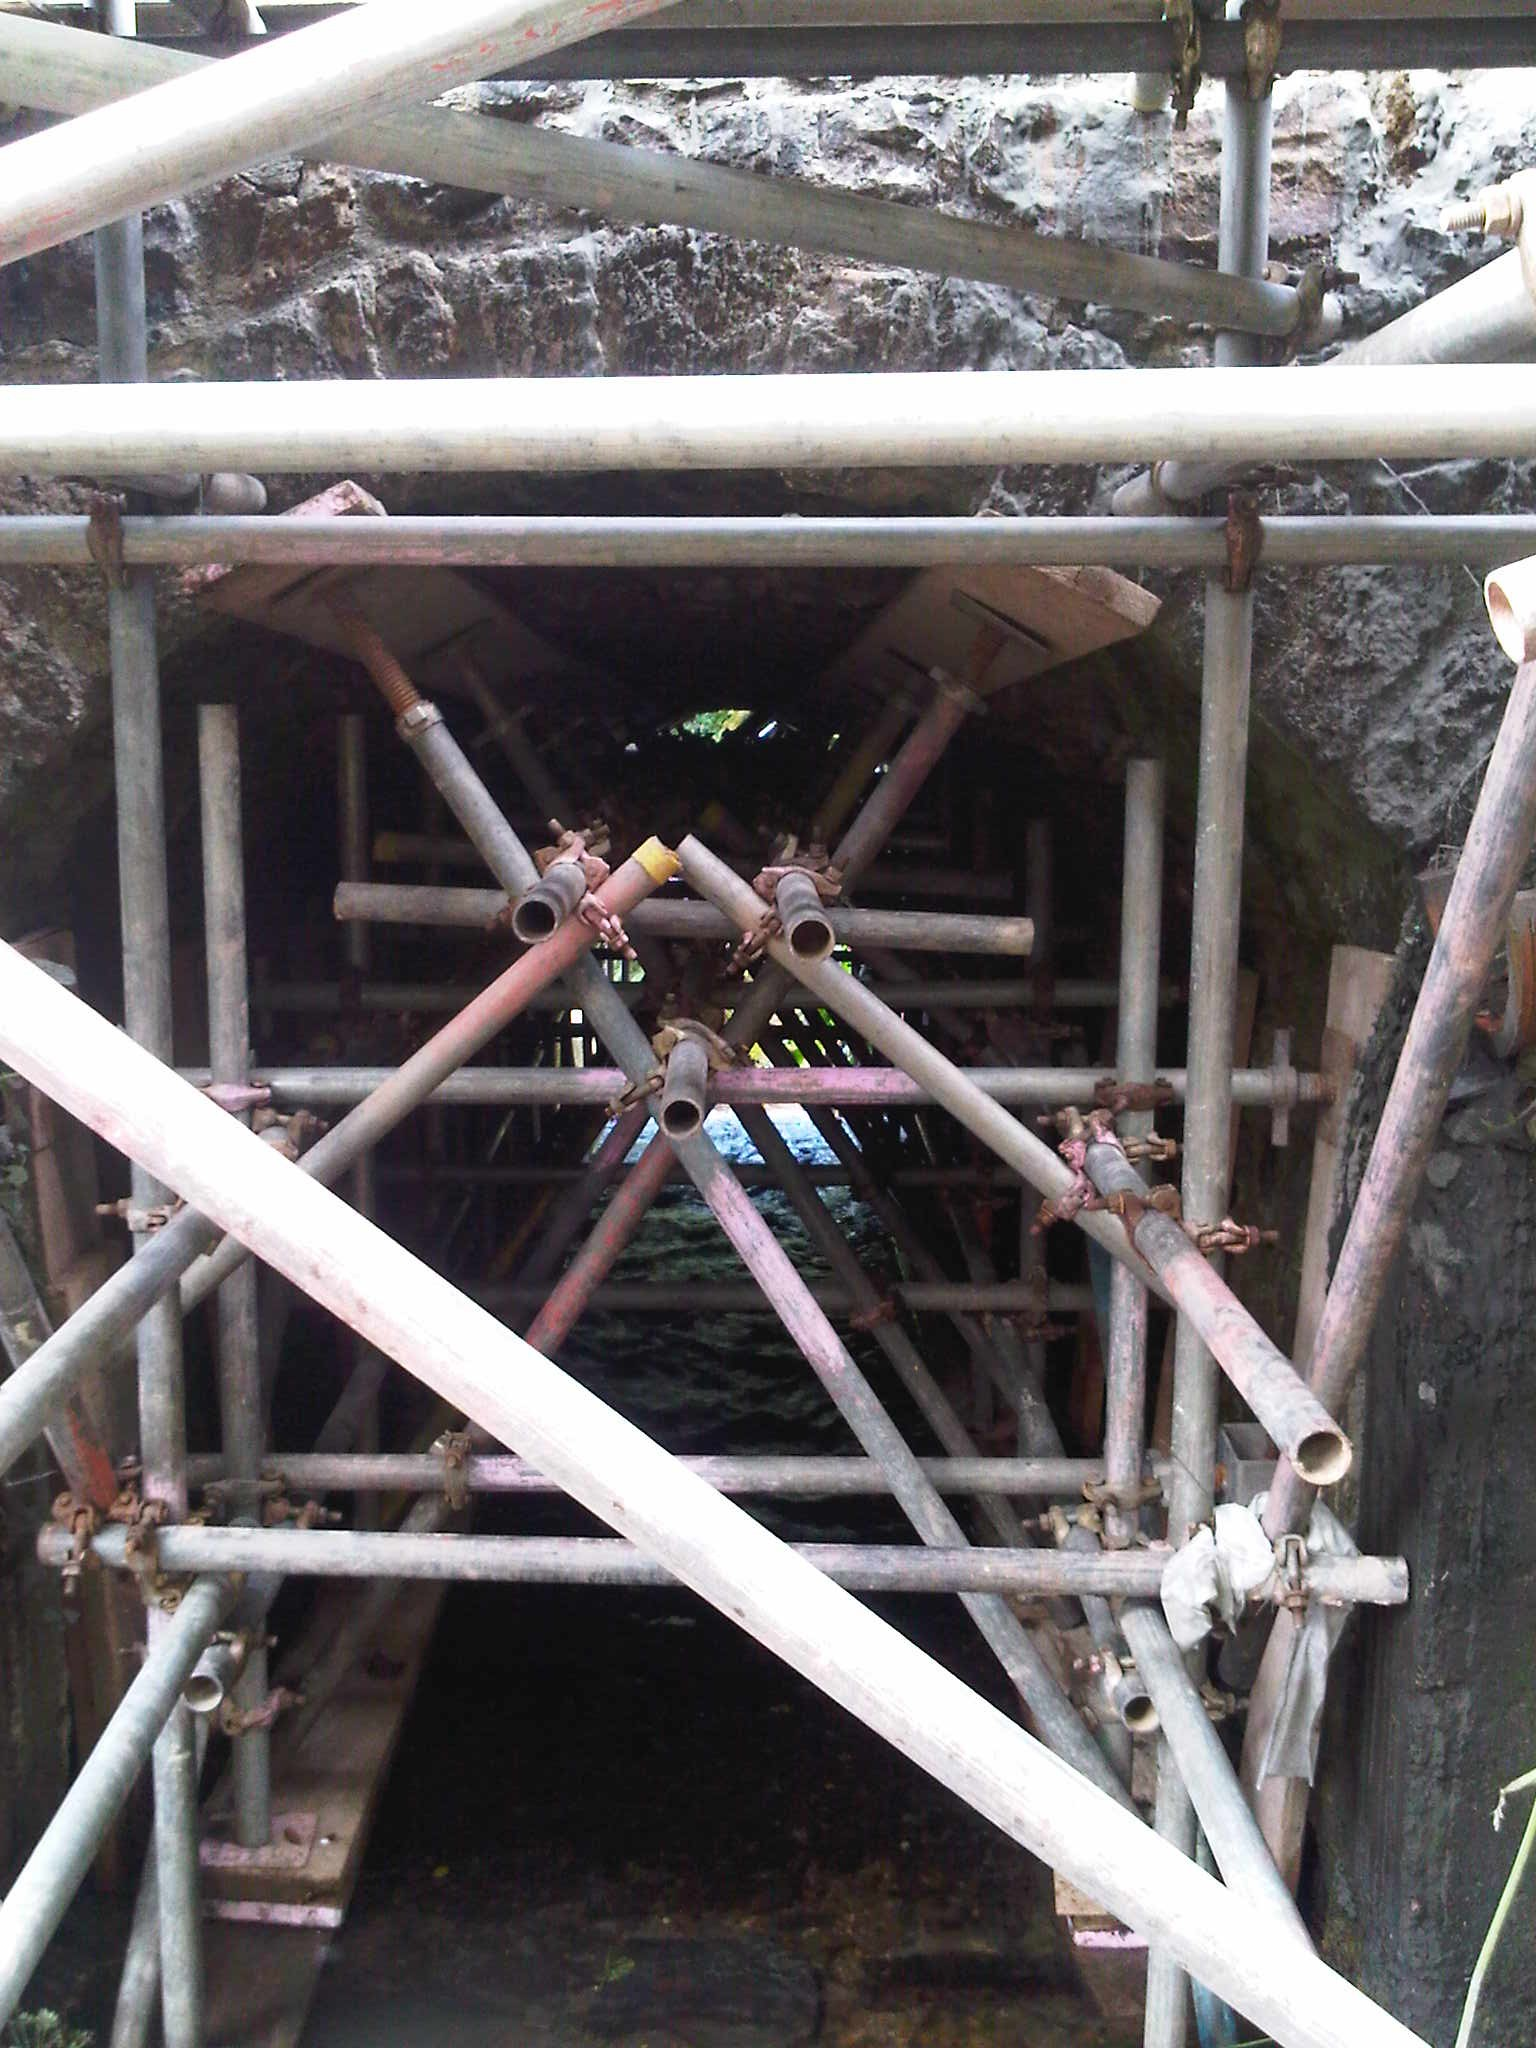 Scaffolding supports arch bridge while works continue on top.